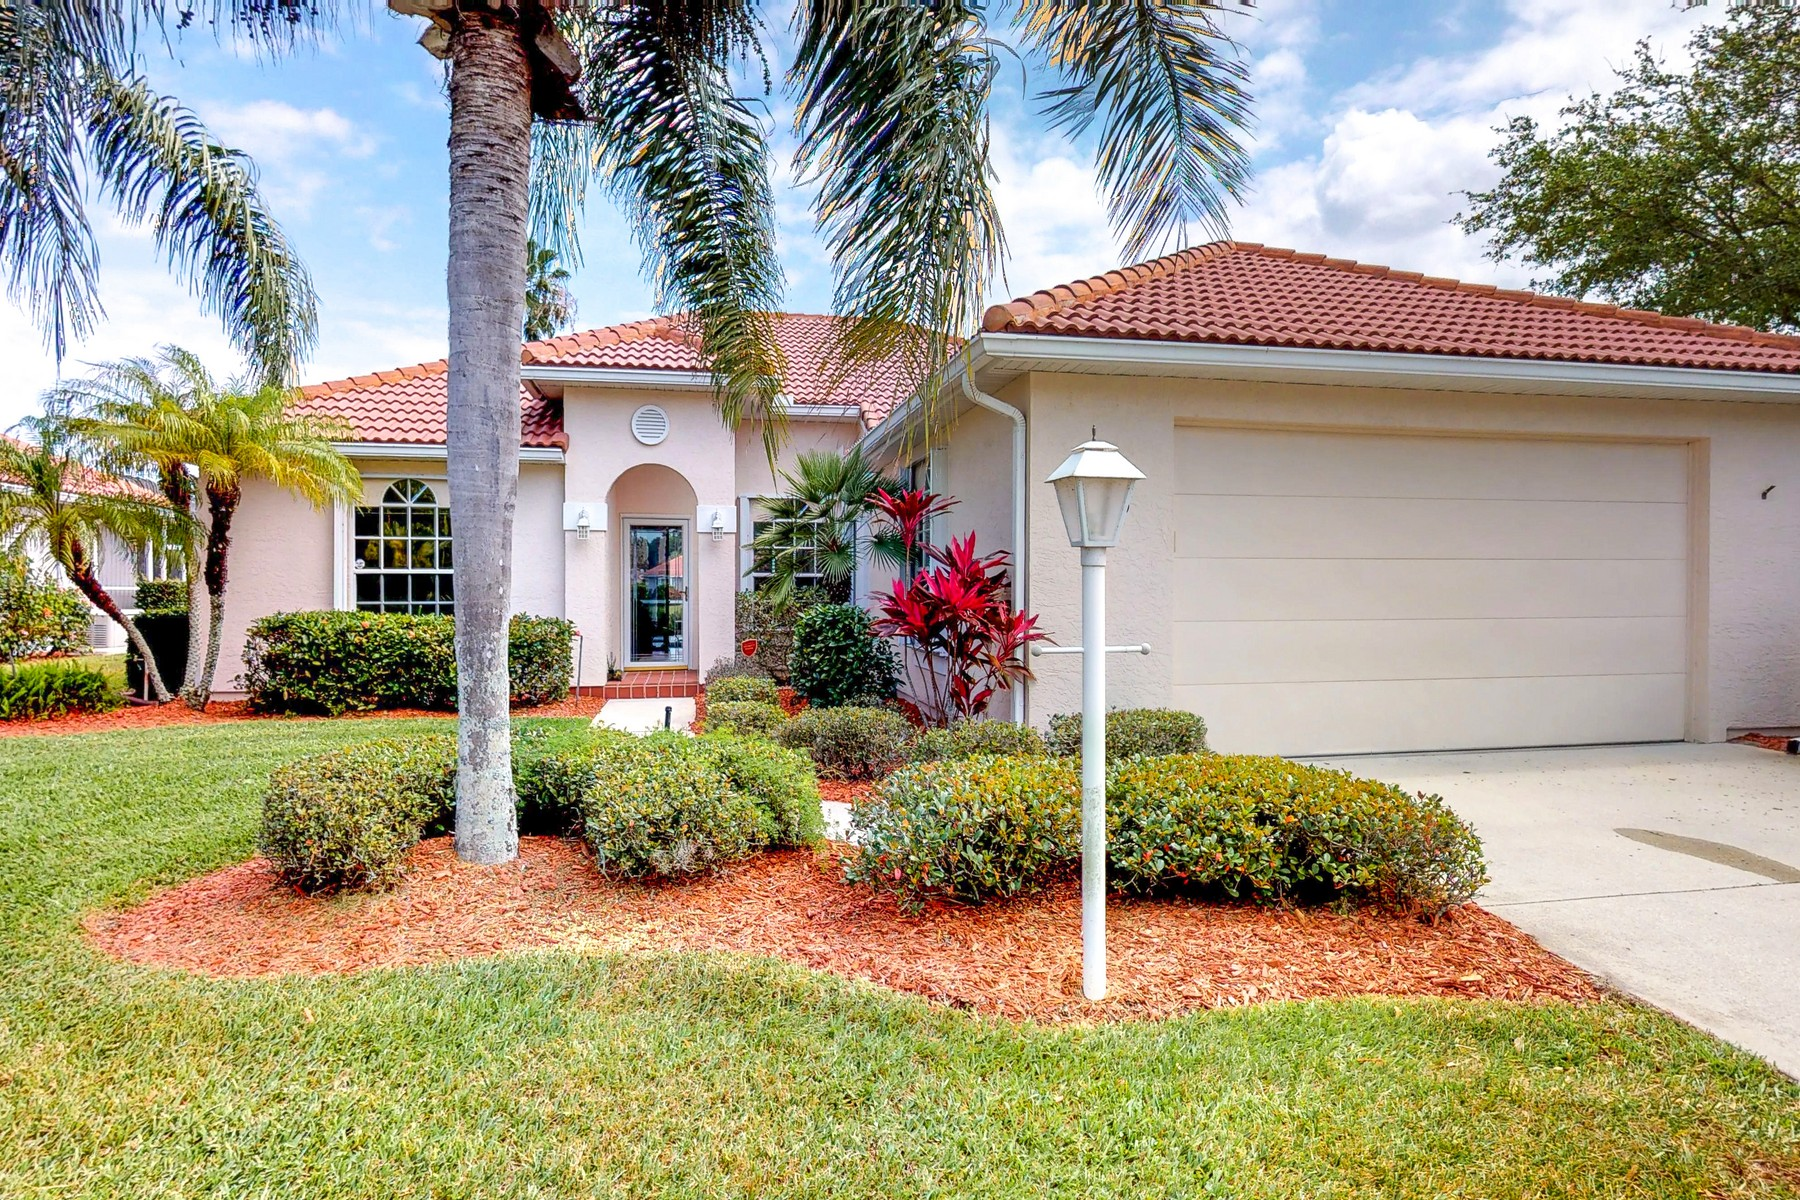 Single Family Homes for Sale at Waterfront Dream 2480 55th Square Vero Beach, Florida 32966 United States